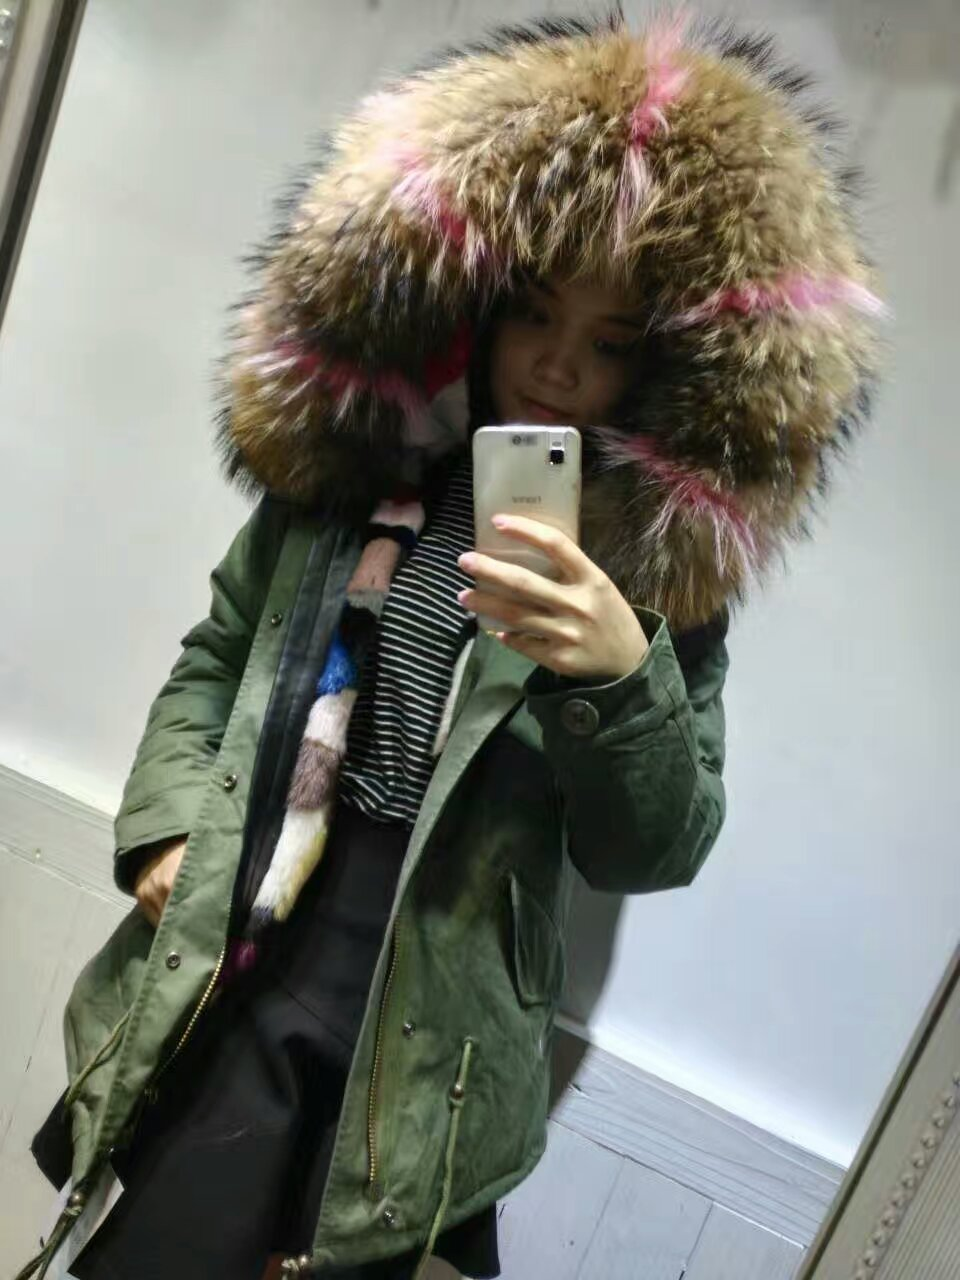 FASHION NEW Bigger Raccoon Dog fur hooded coat colorful real fur inside jacket winter women Mink Fur coats multi furs parka